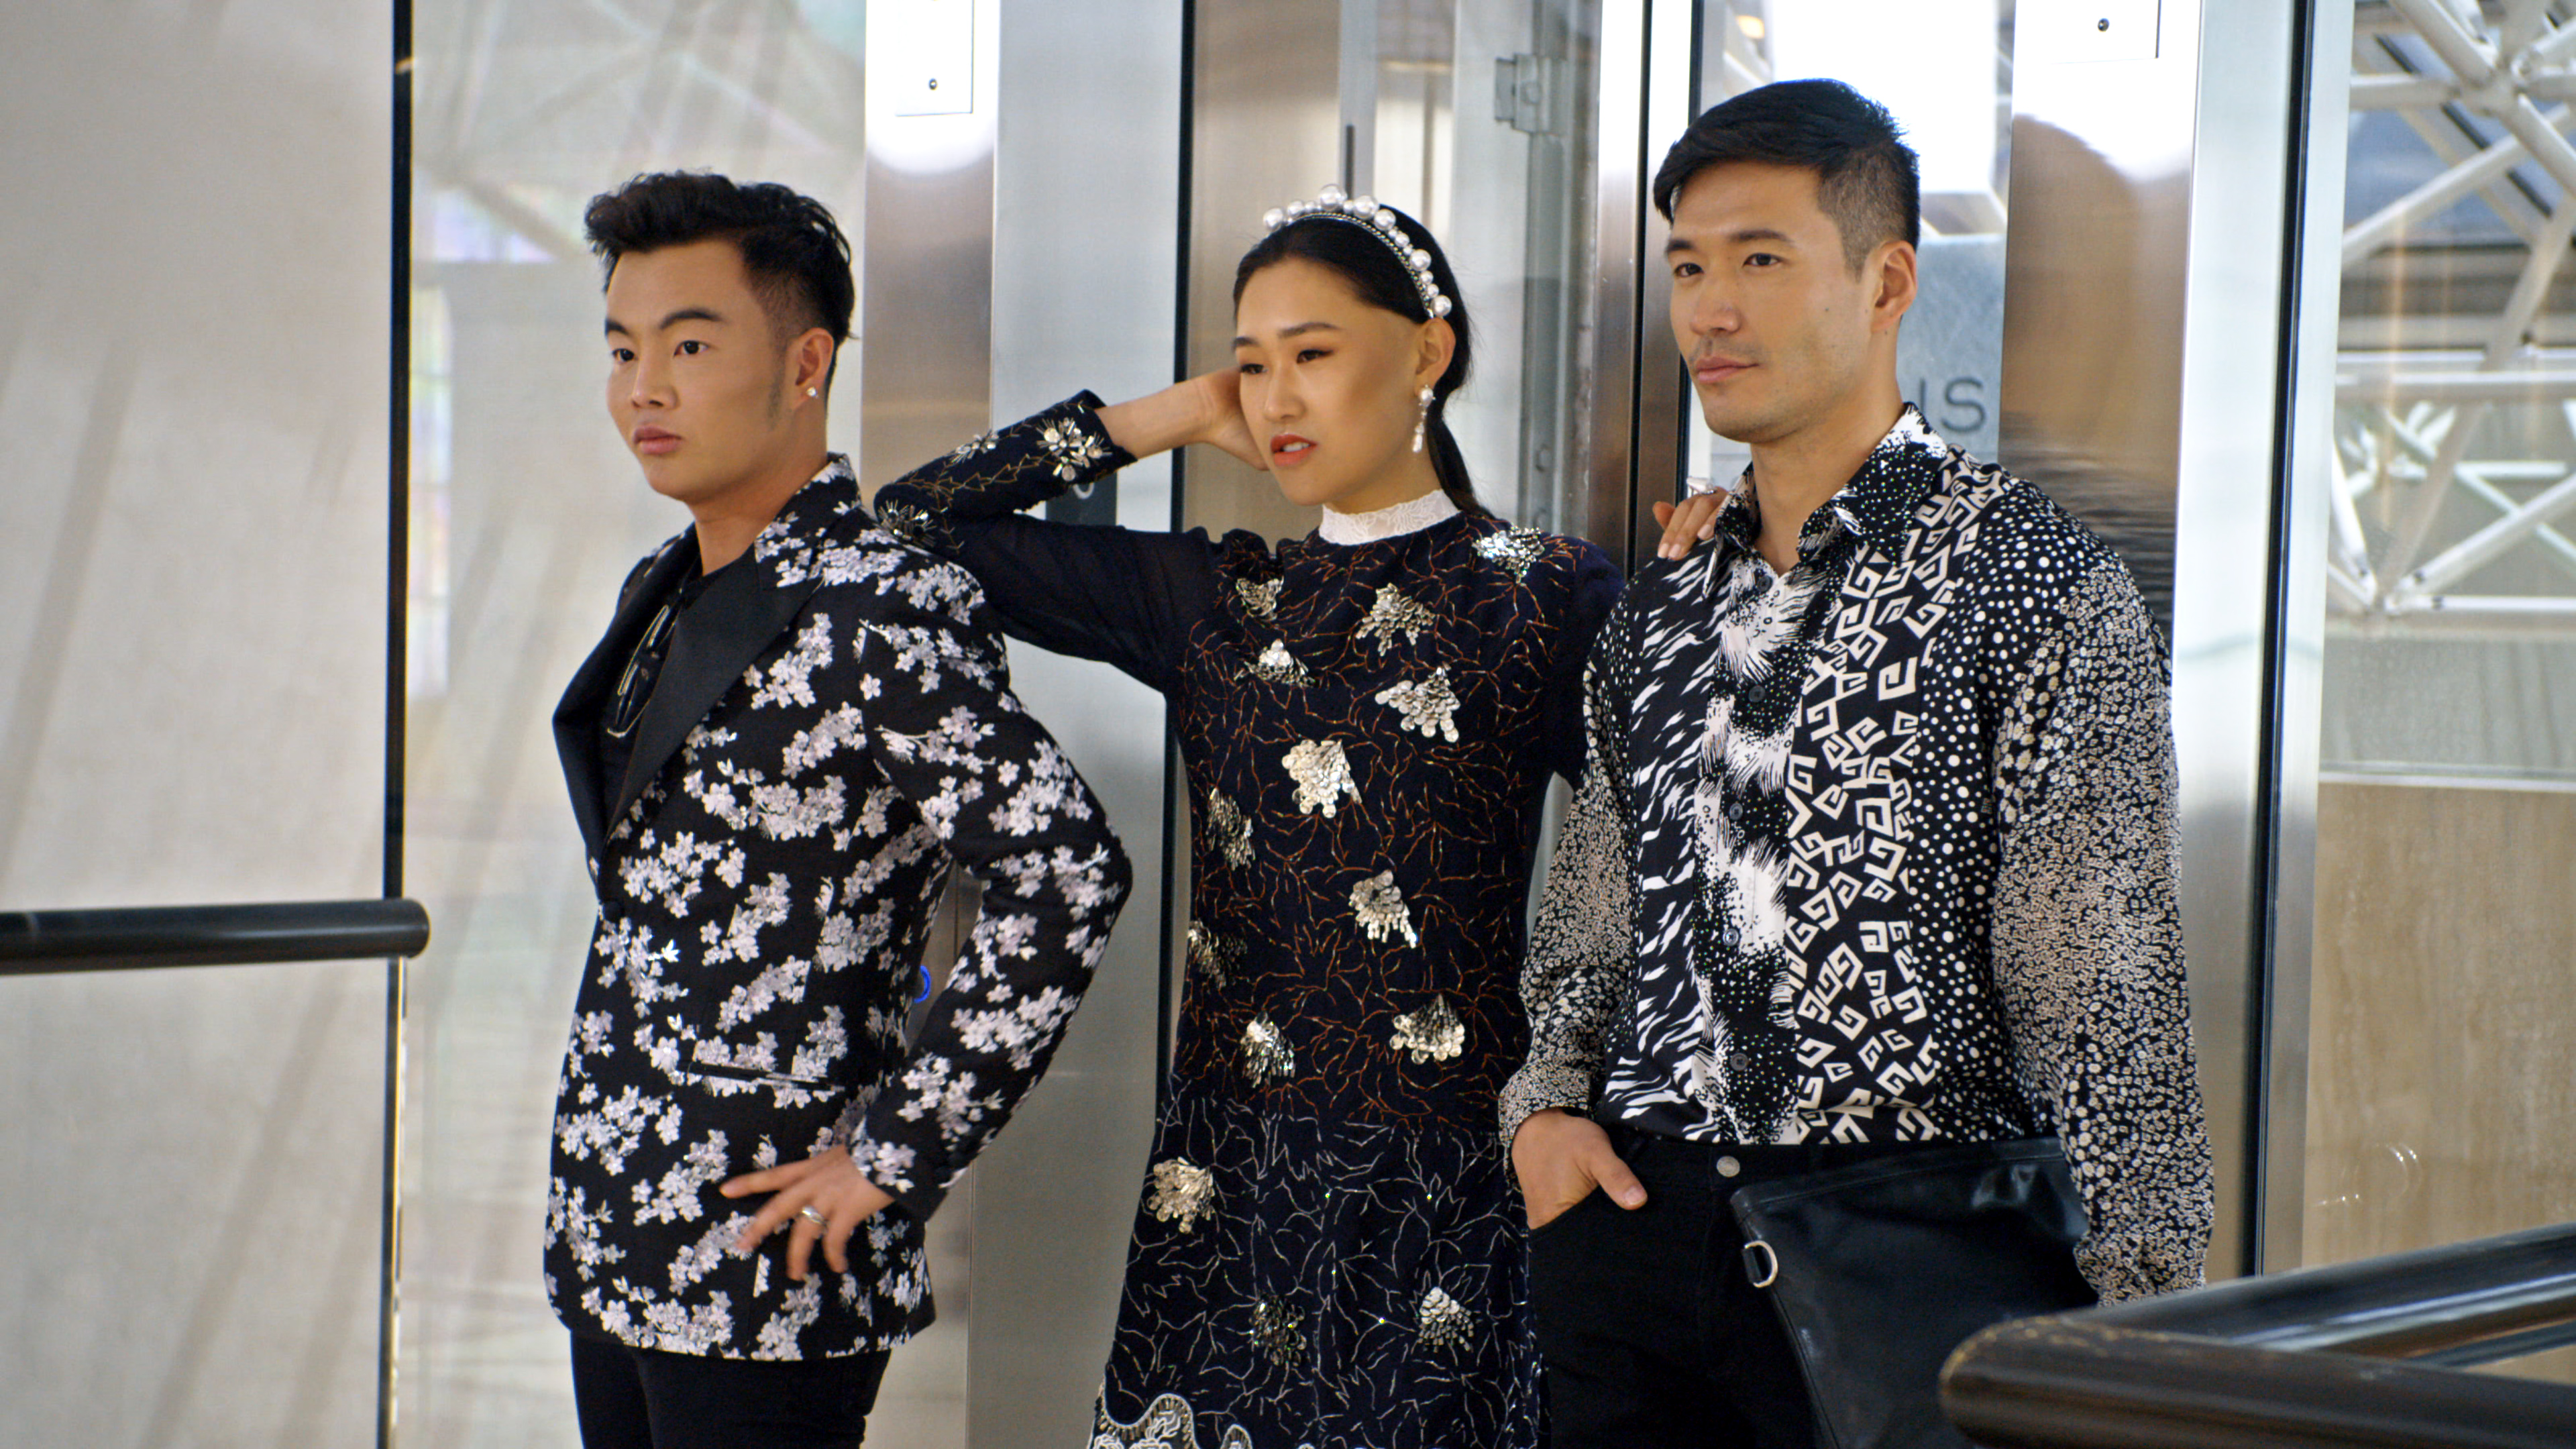 """(L-R) Kane Lim, Jaime Xie and Kevin Kreider in episode 8 """"Will You Marry Me?"""" of Bling Empire: Season 1. c. Courtesy of Netflix © 2021"""